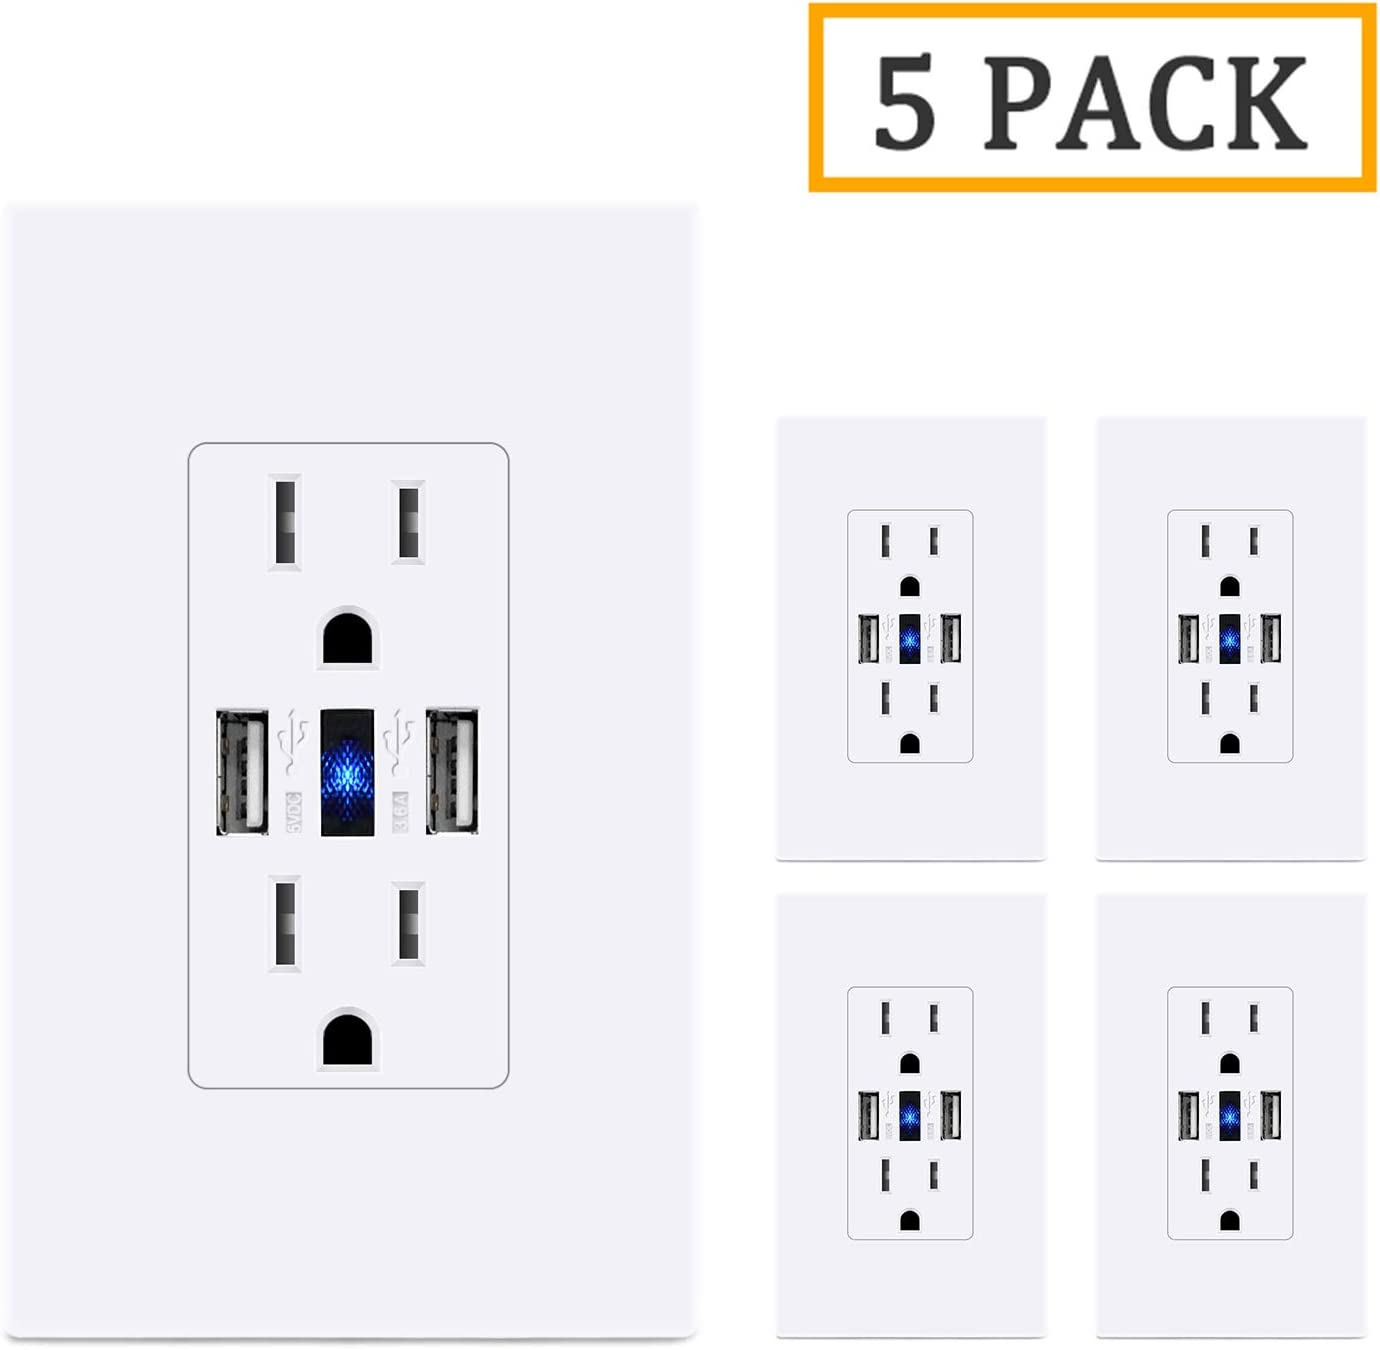 LEISHEN USB Power Outlet,UL Listed 3.6A USB Charger Outlets with 2 USB Charging Ports 15A 125V TR Receptacle Electrical Wall Outlet Screwless Wallplate Included-5 Pack,White